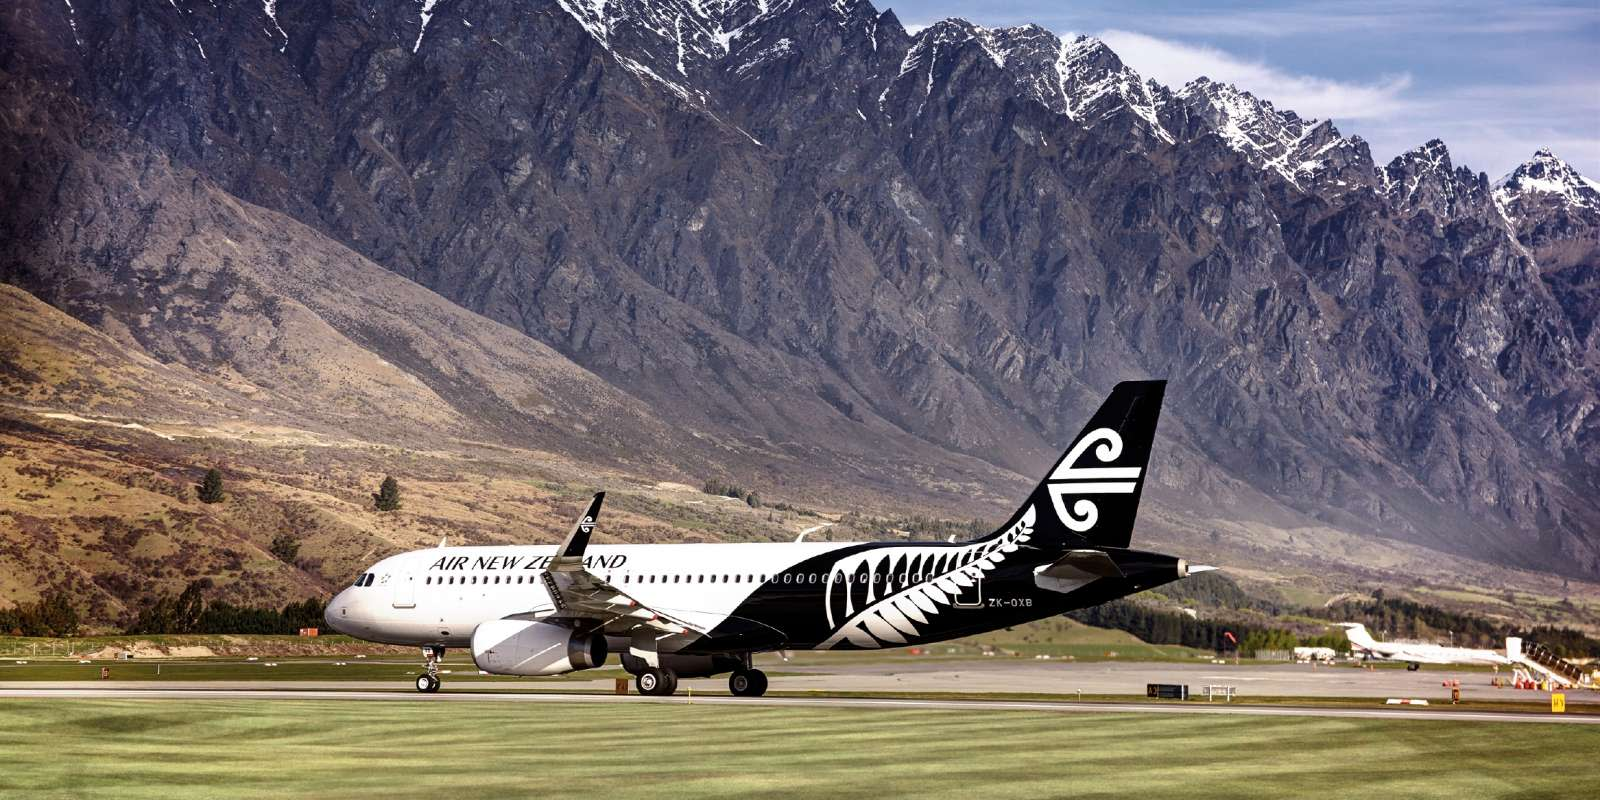 Plane at Queenstown Airport